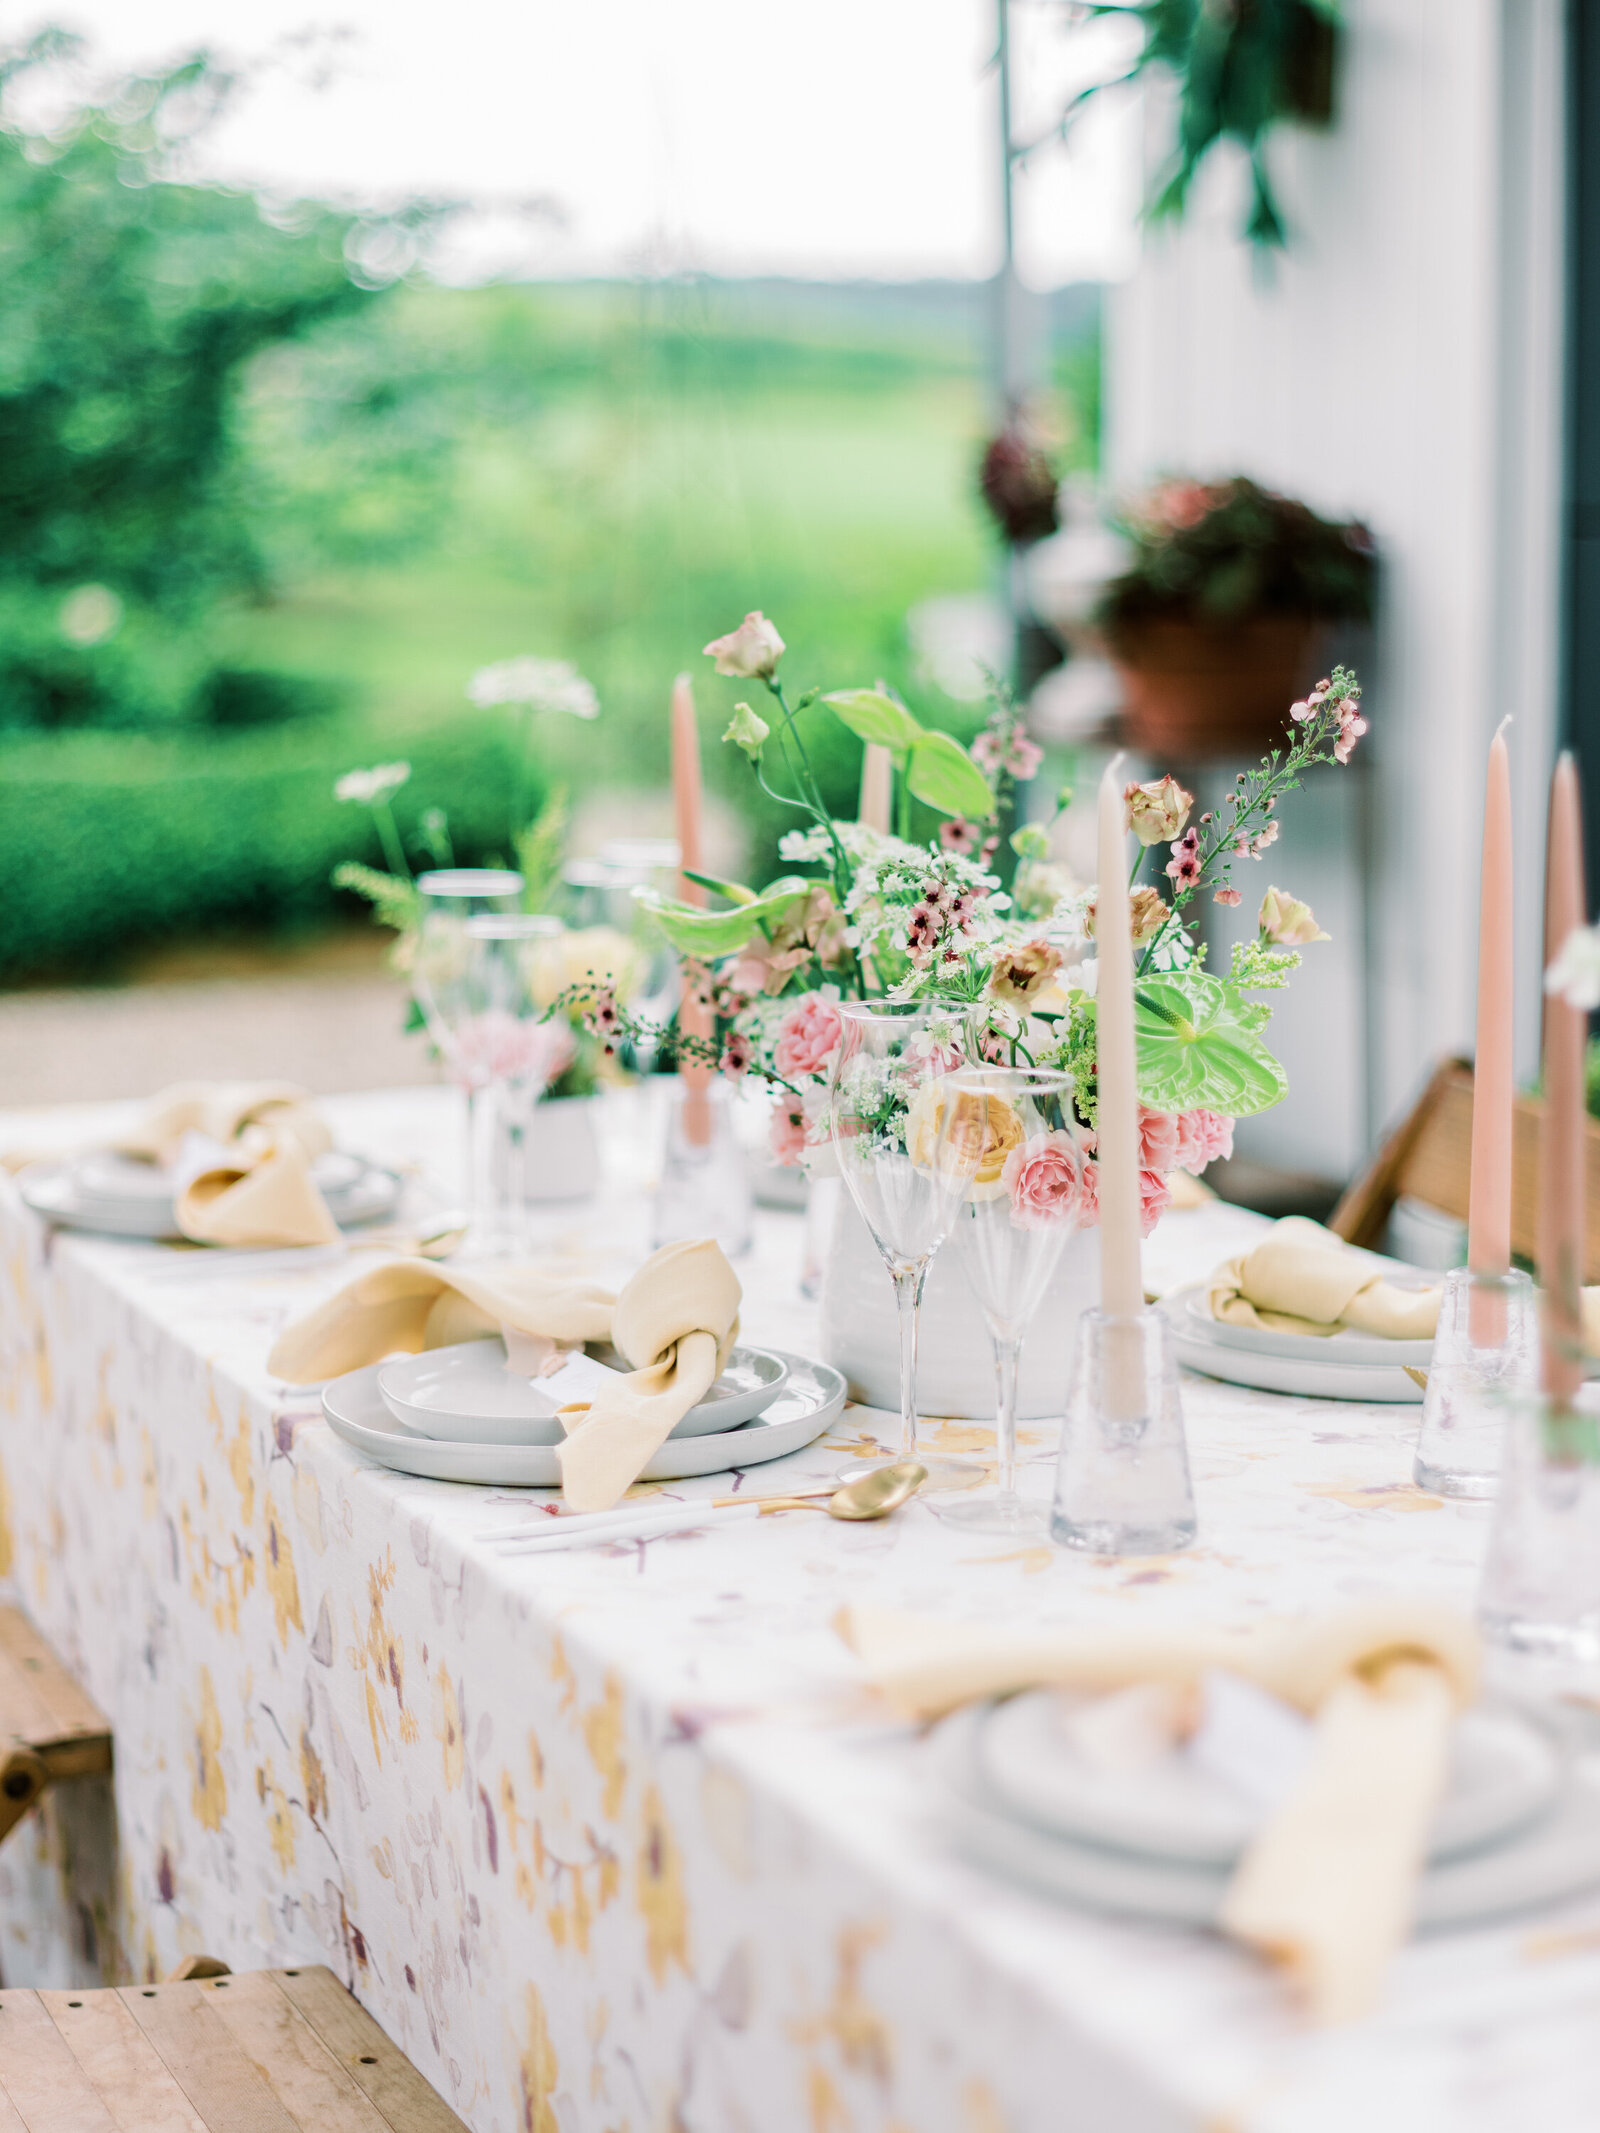 Dinner setting with candles and floral arrangements